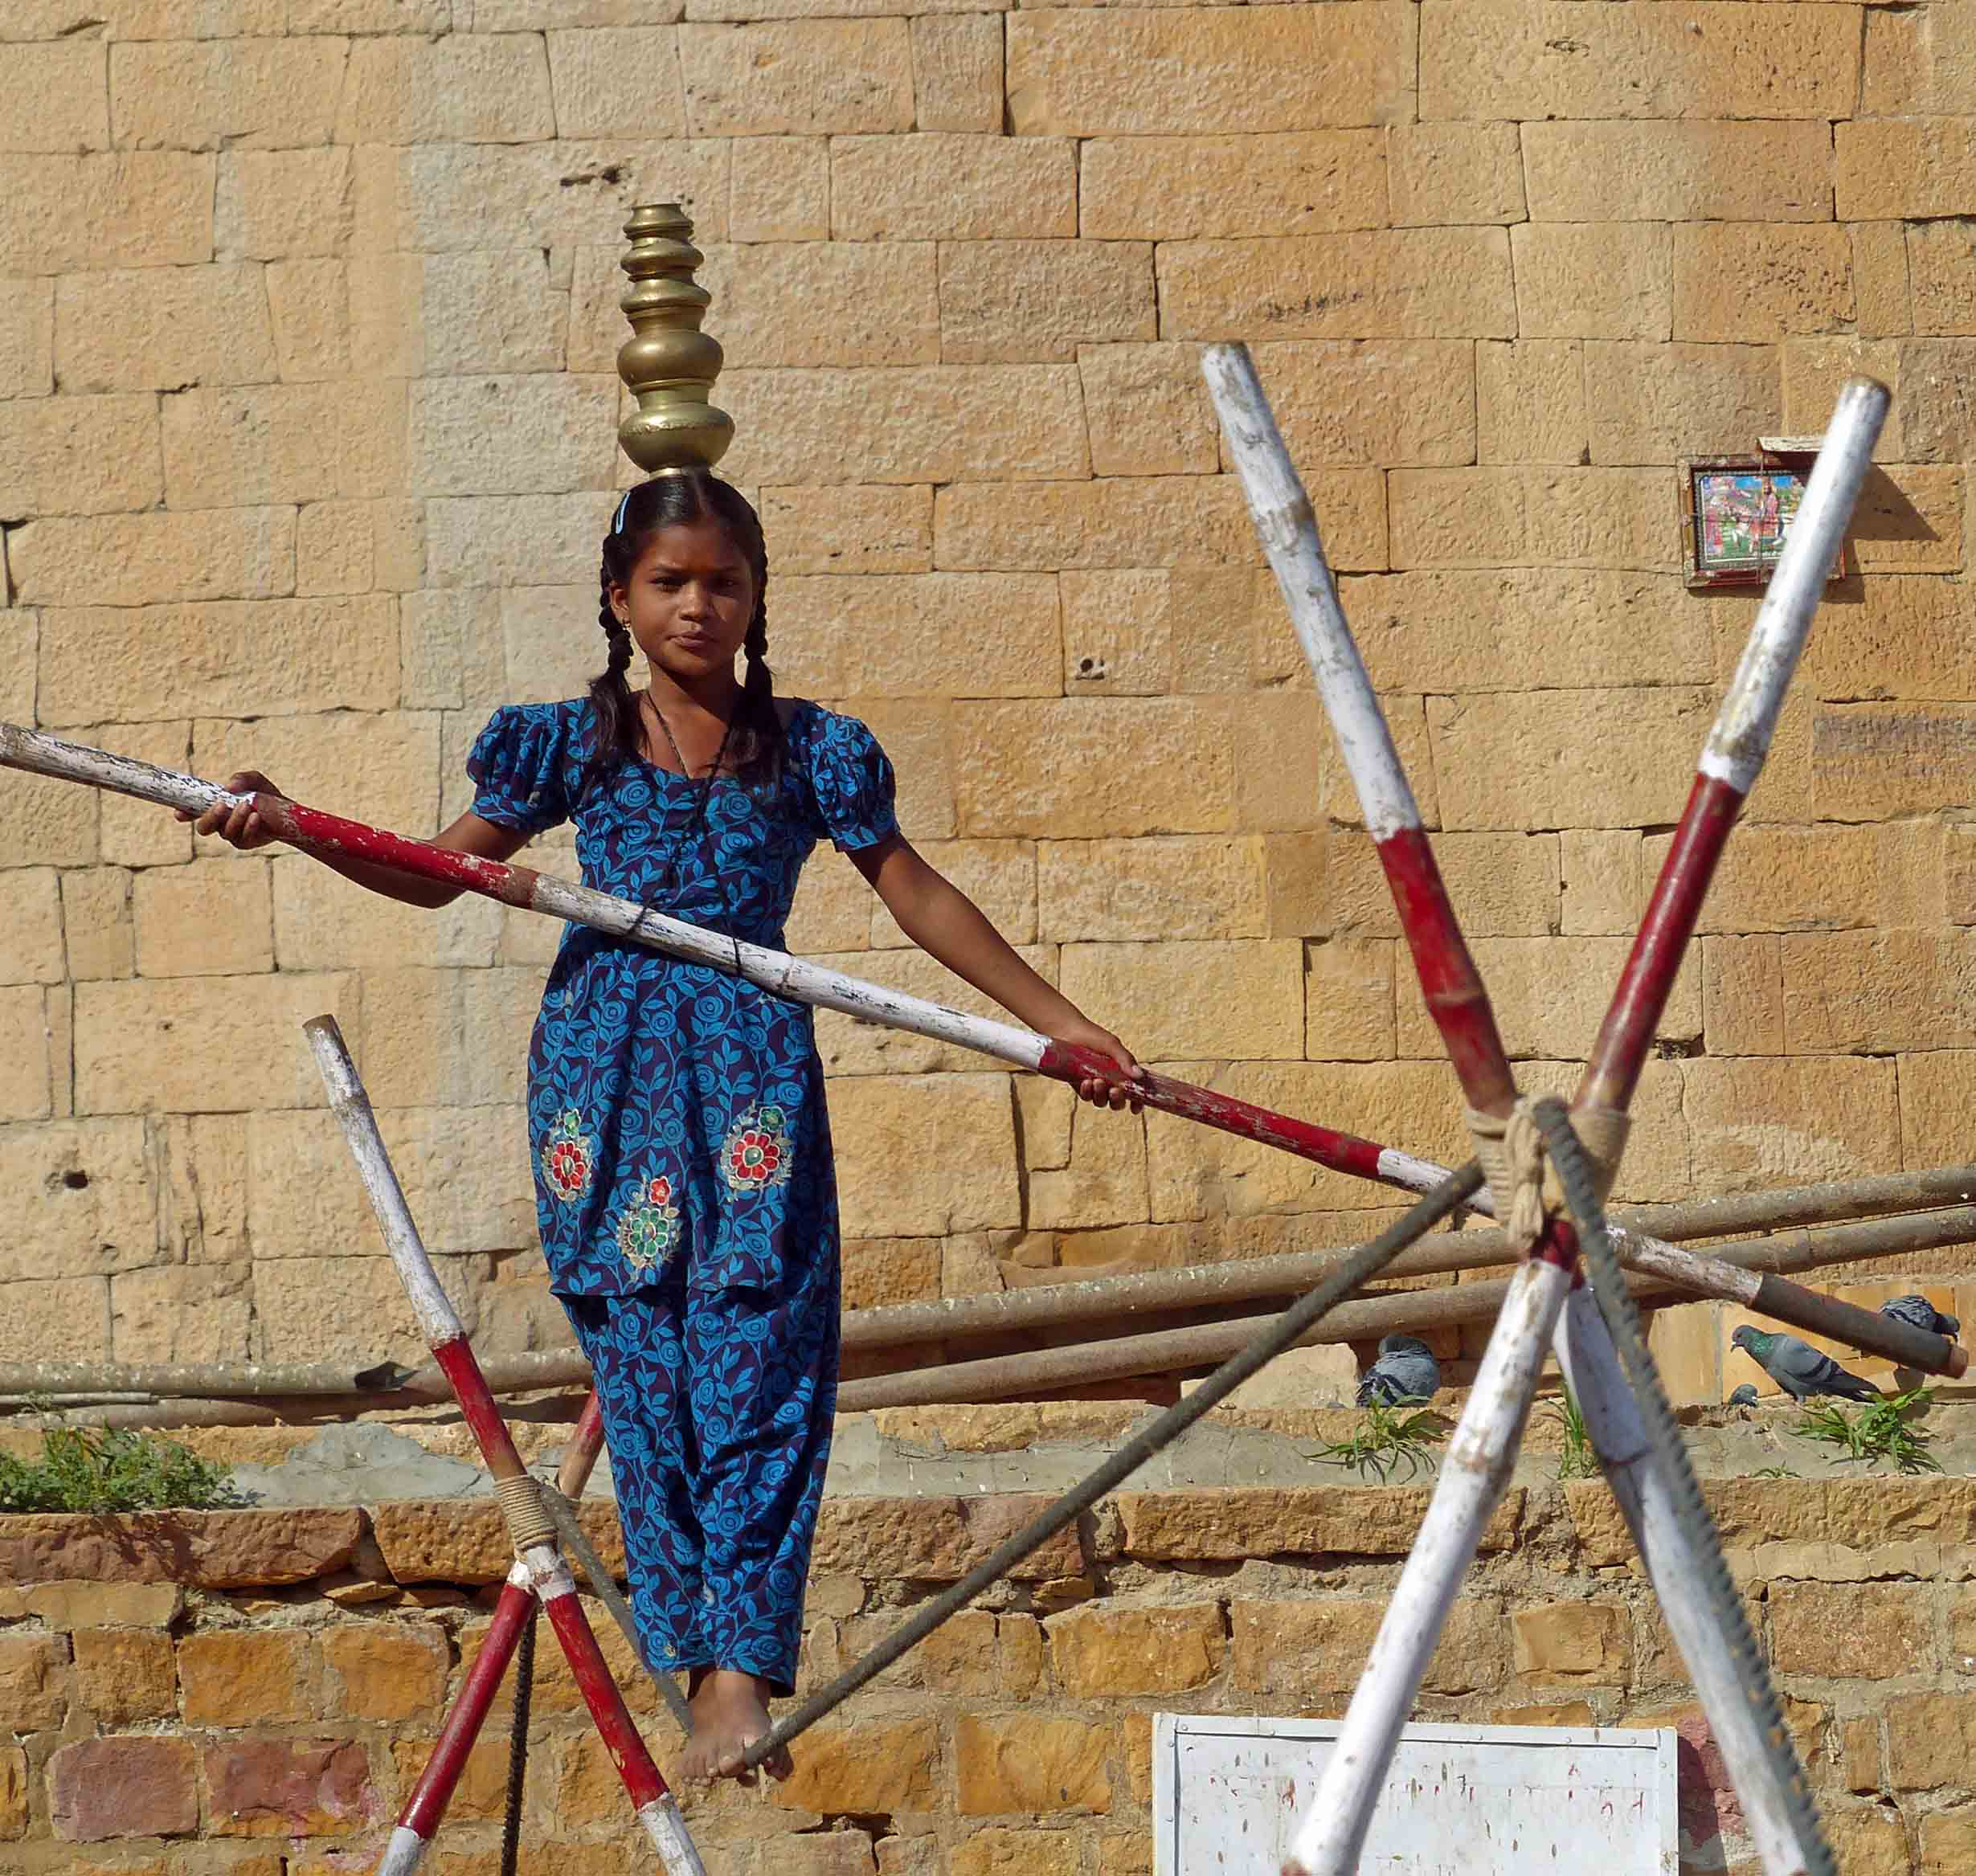 Girl in blue tunic balancing on a tightrope